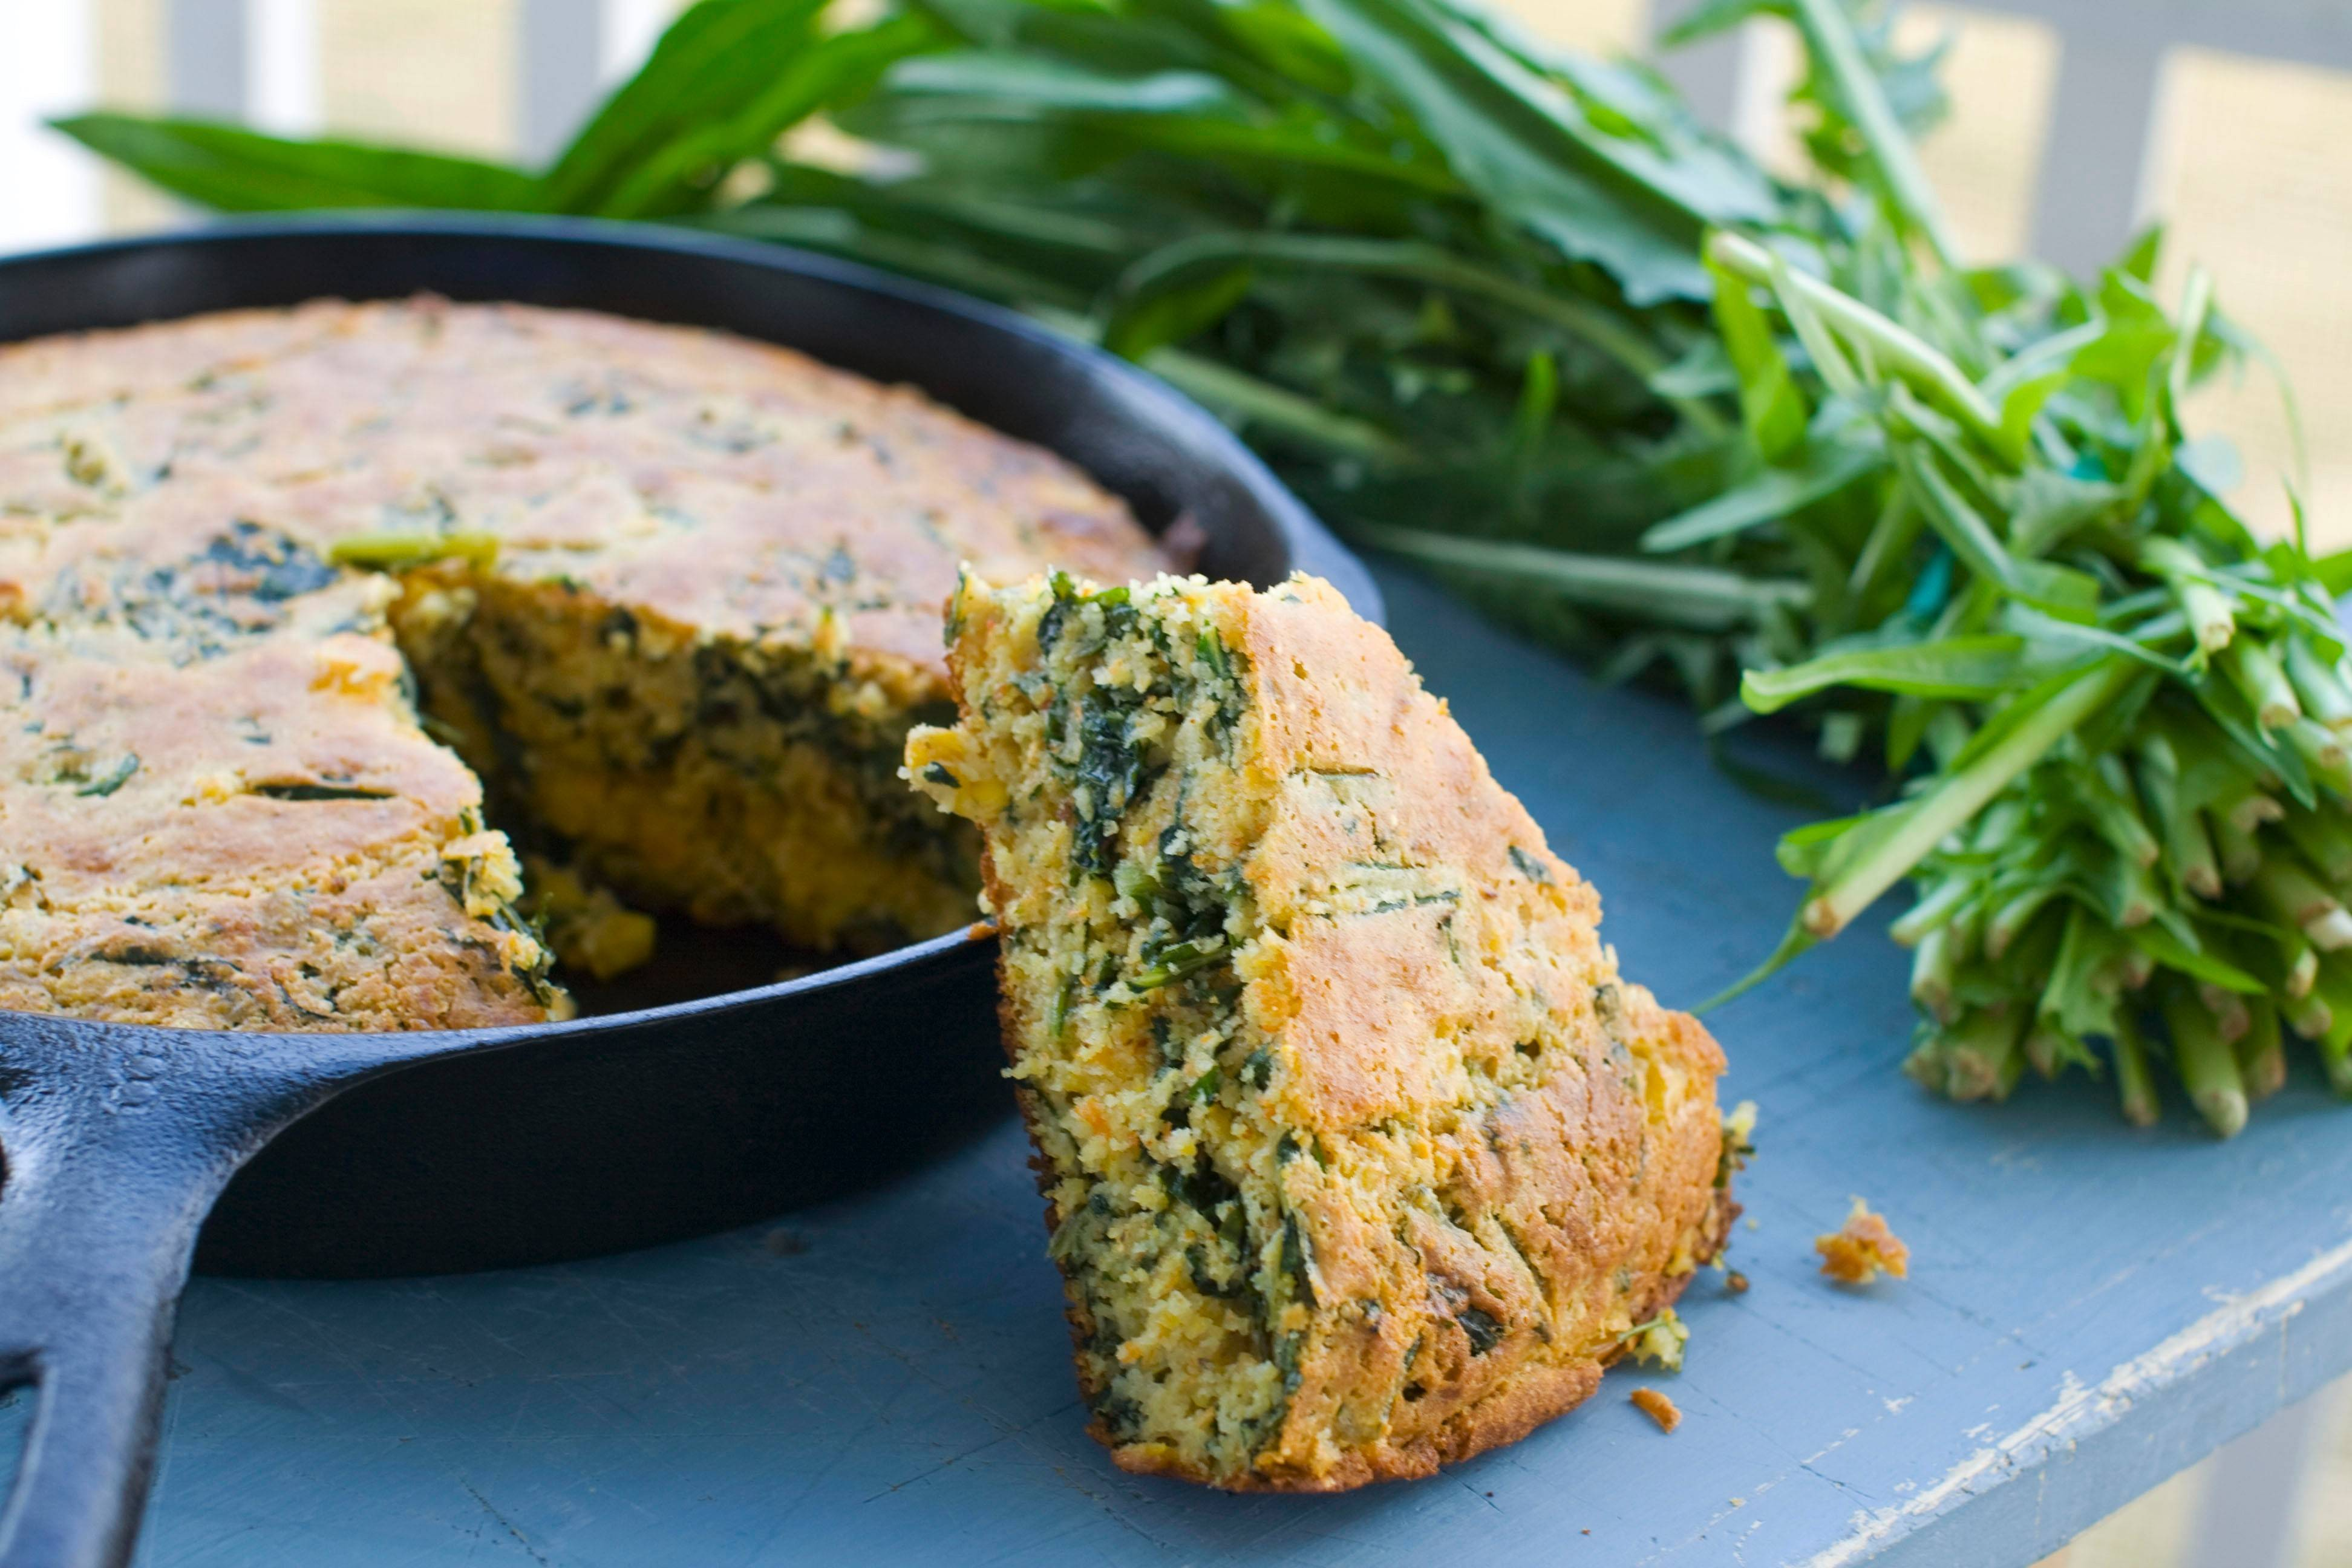 Dandelion greens can be used just like arugula or spinach in recipes for stew, lasagna and cornbread.